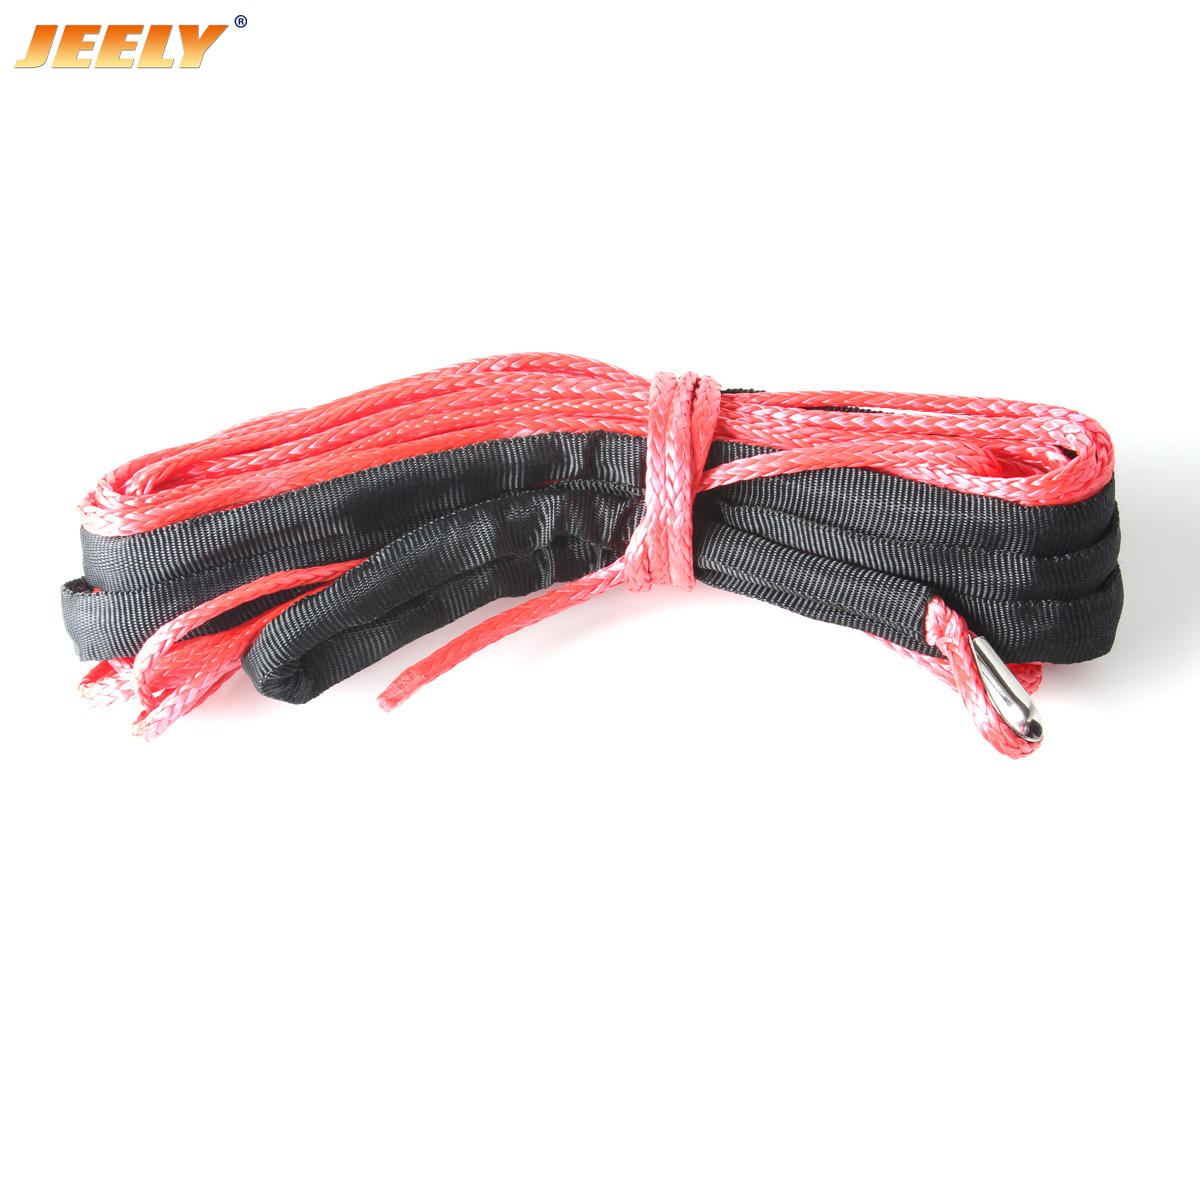 11MM 30M 12 Weave UHMWPE Synthetic Winch Rope for BOAT/OFF-ROAD/ATV/UTV/SUV/4X4/4WD auo parts